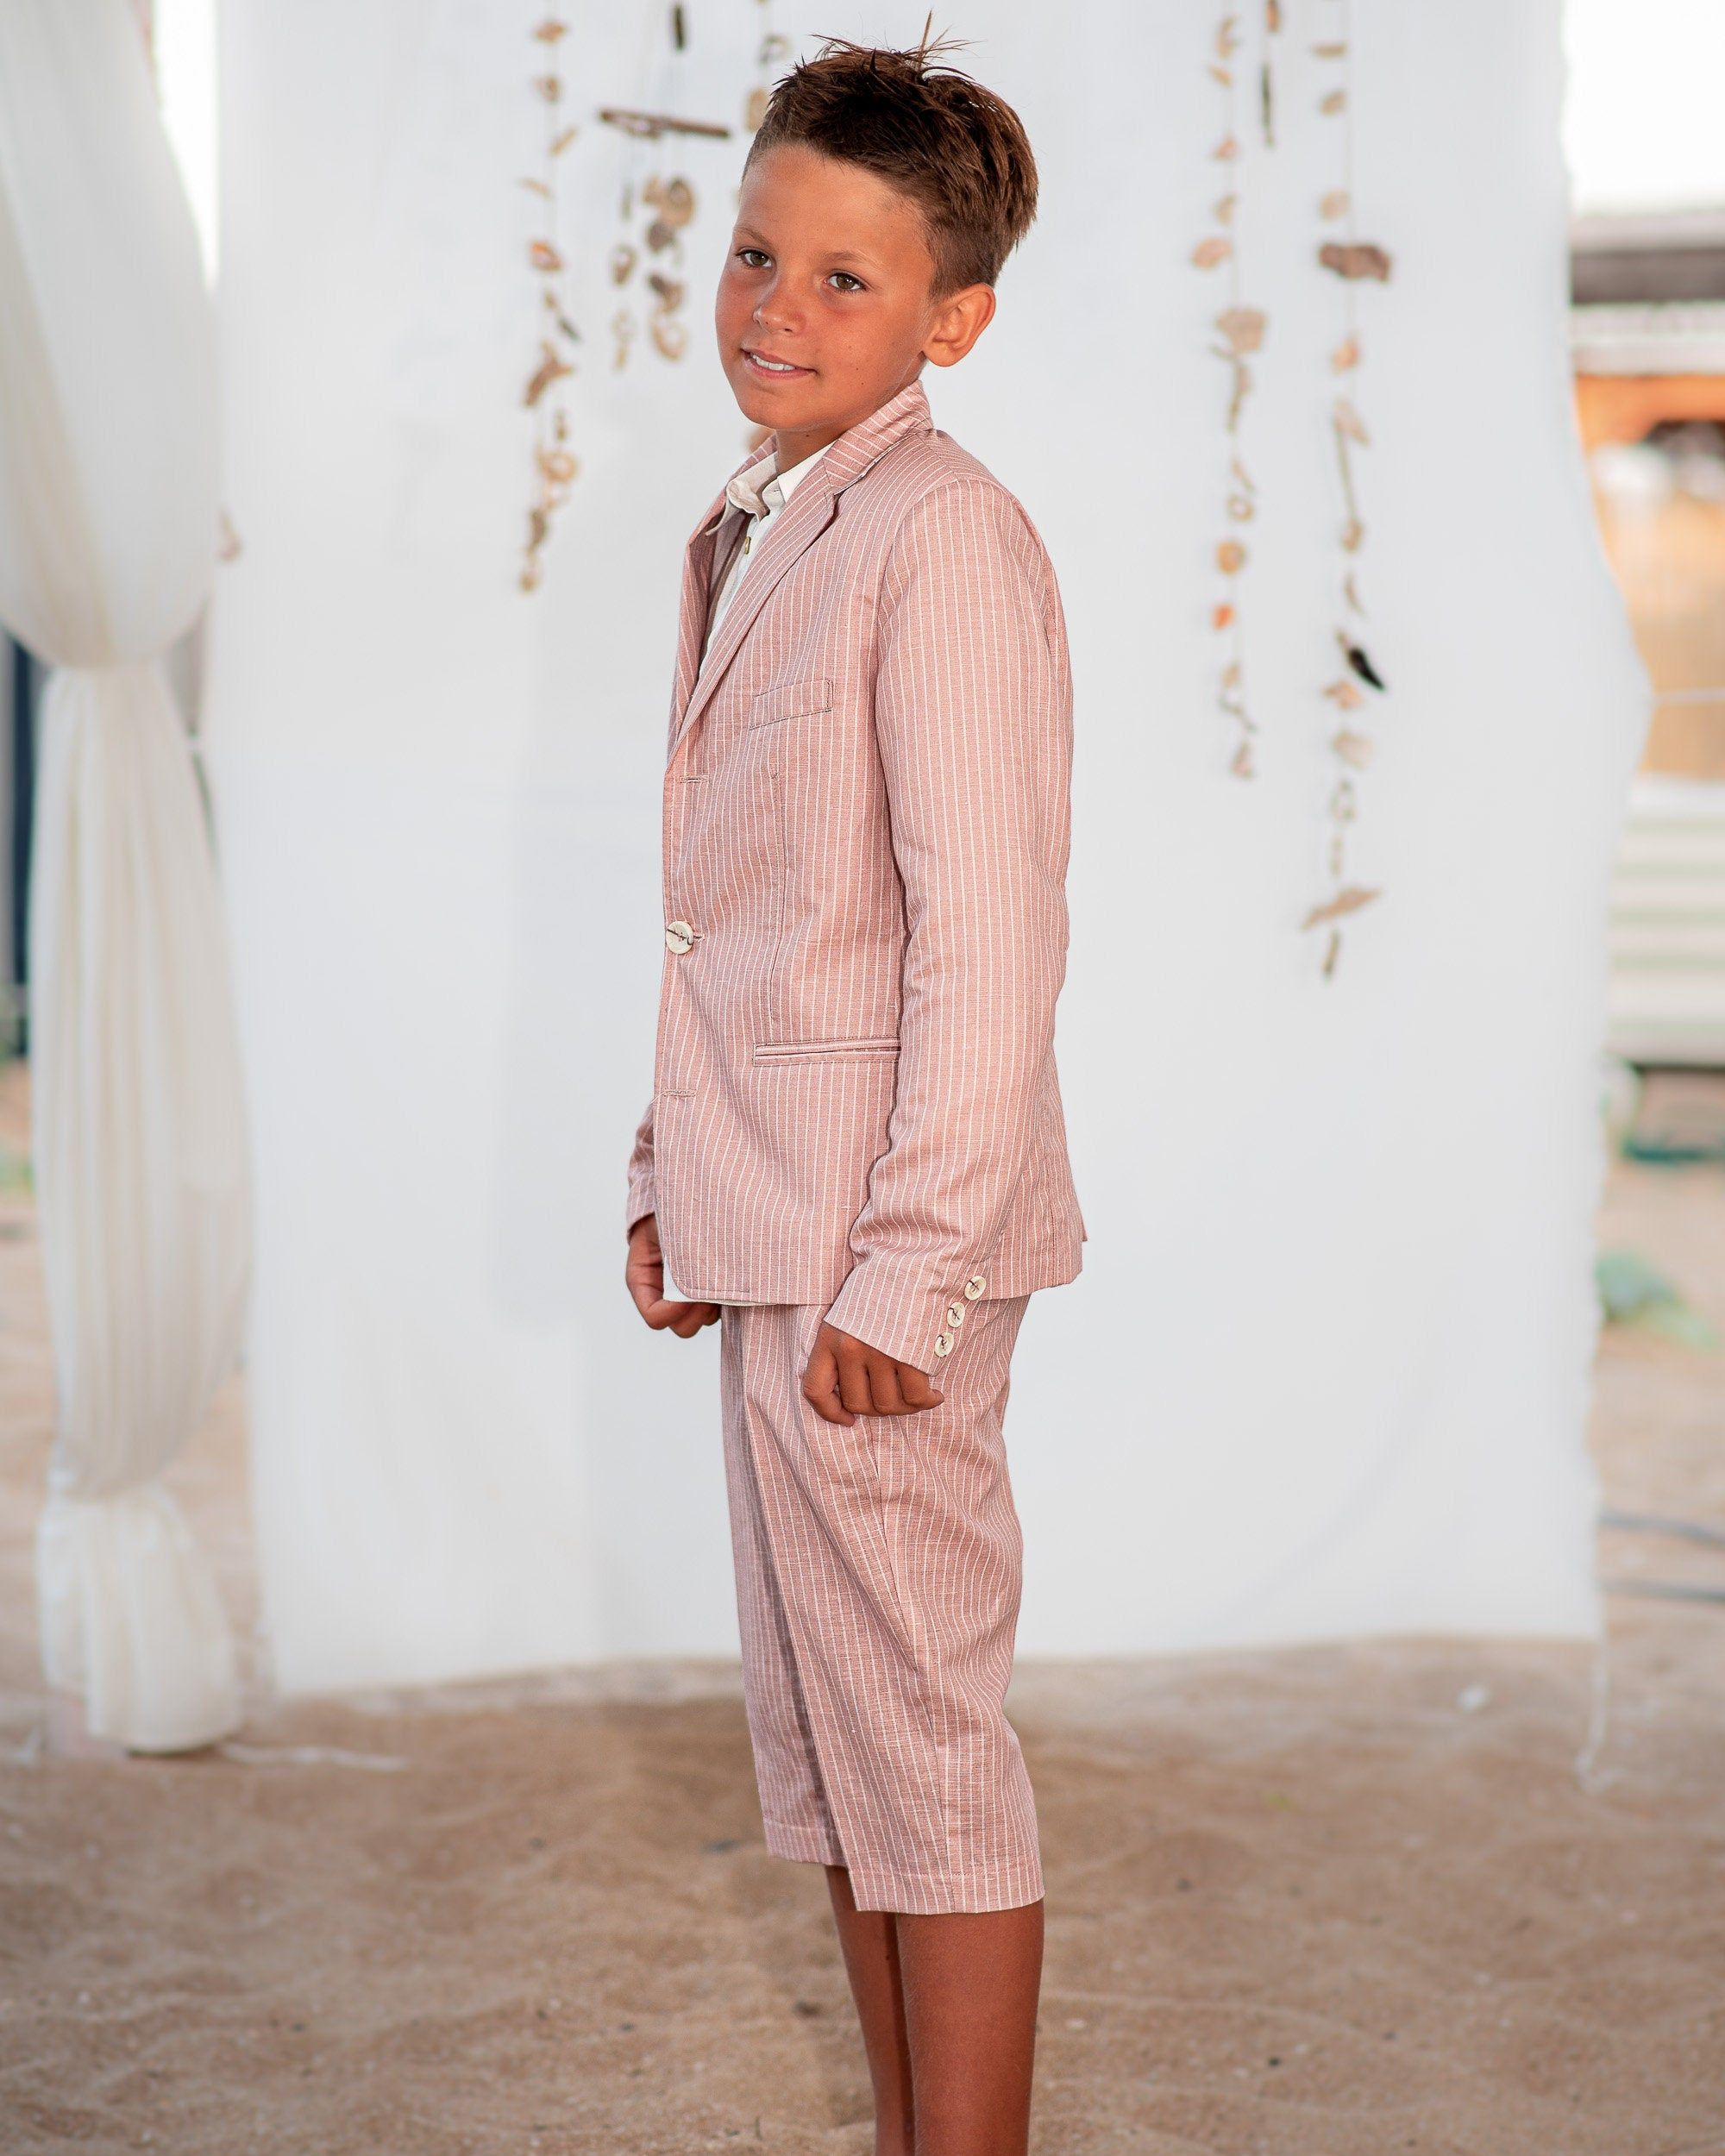 Boys linen suit summer set blazer and shorts linen clothing set boy summer outfit for kids summer clothes cute casual summer outfits